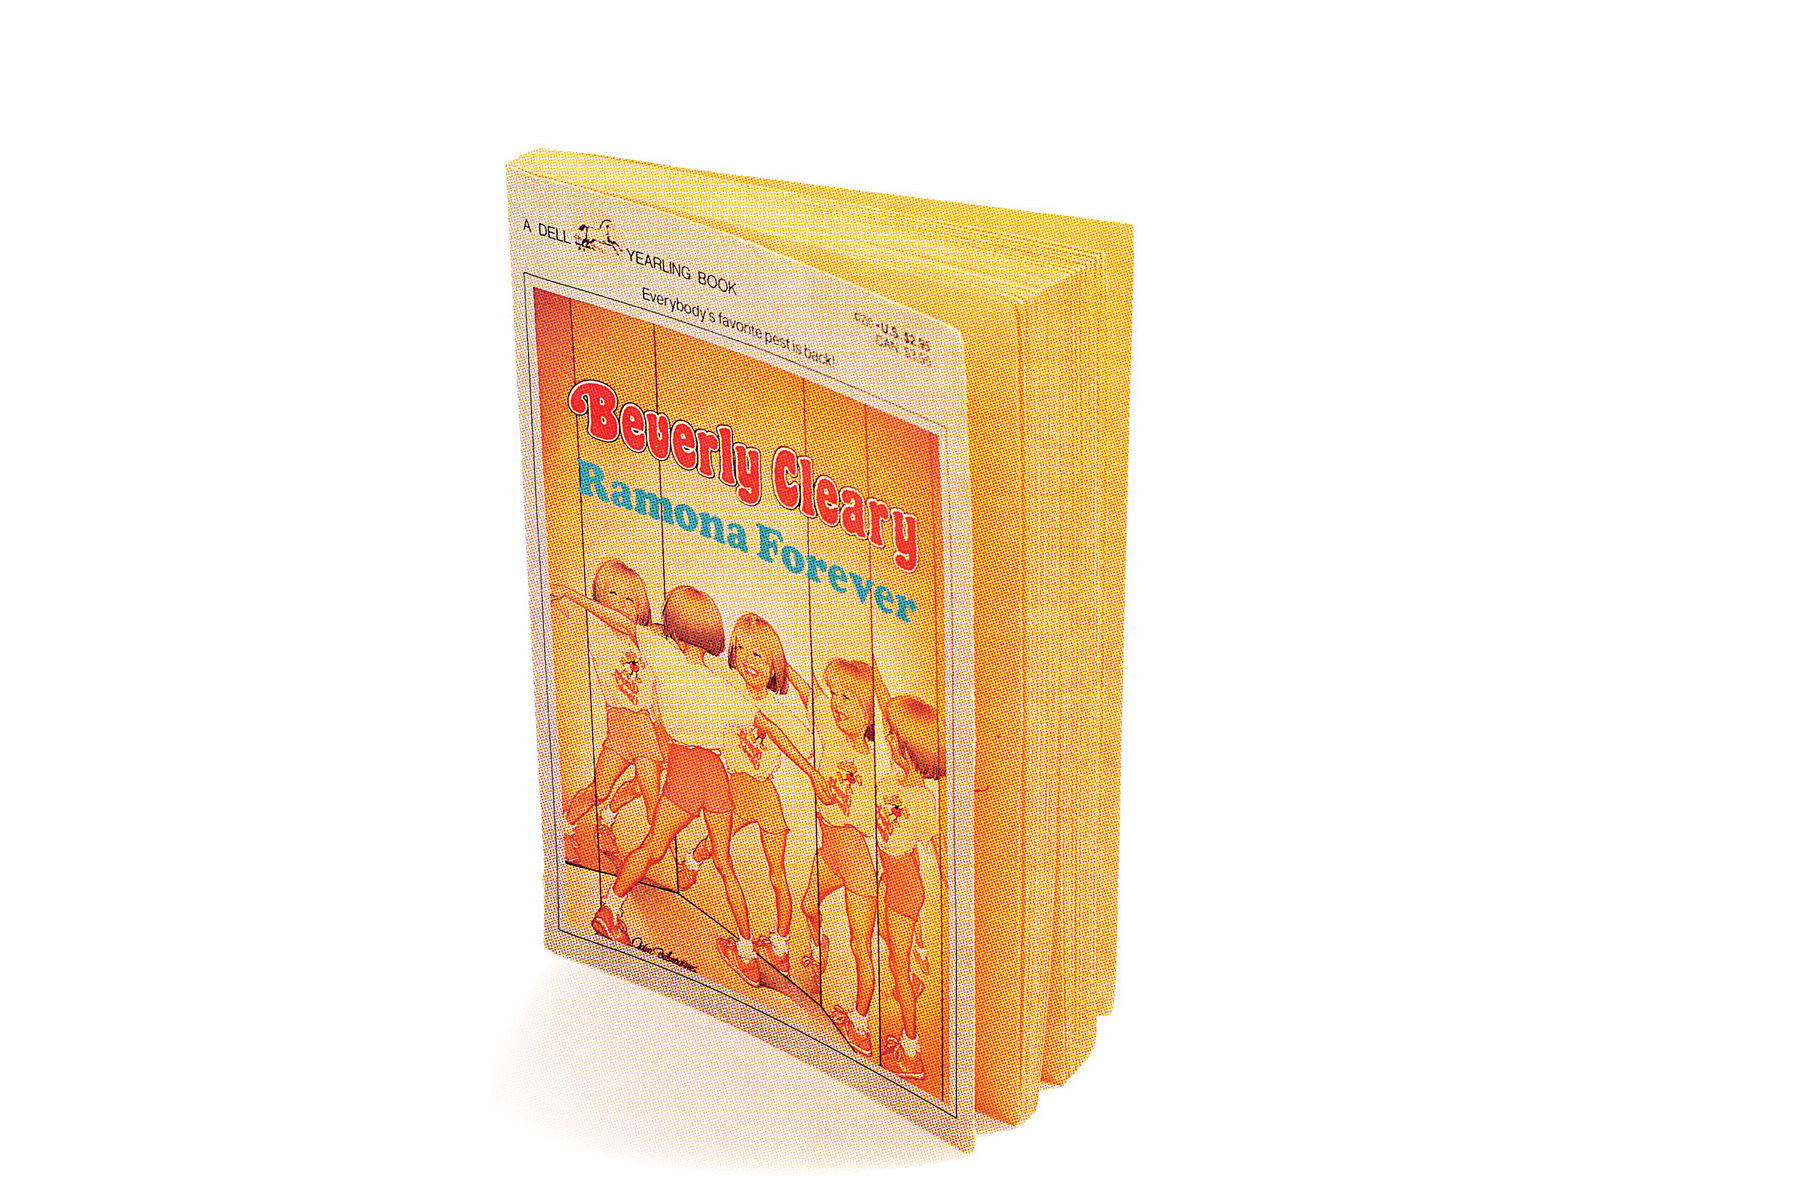 Pomo 1216 pop ramona beverly cleary zcptrh